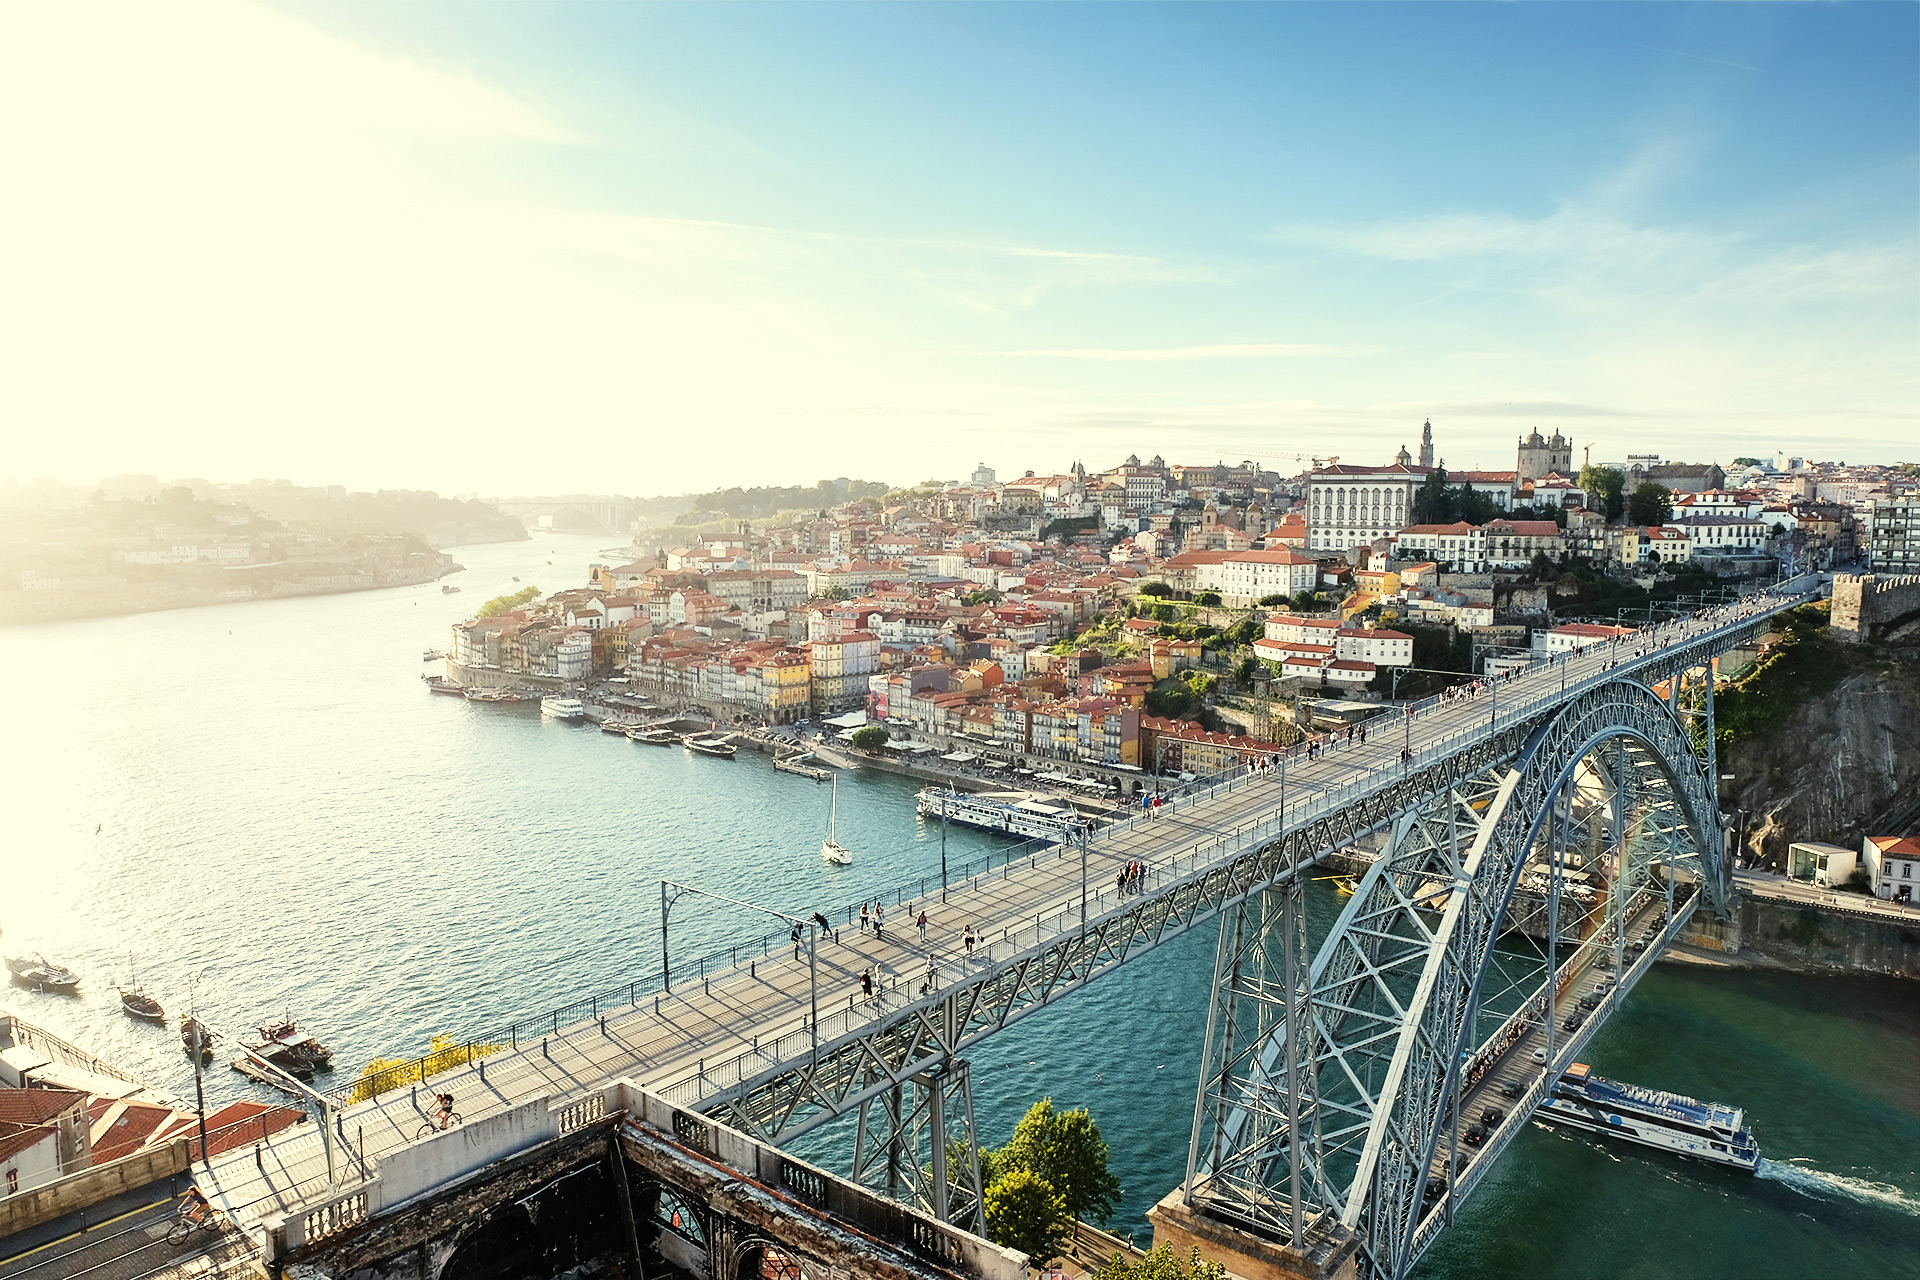 Porto #1 (Dom Luís I Bridge) / Travel, Show the Original, Portugal, Porto, Fujinon XF 16-55mm f/2.8, Fujifilm X-T2 [porto 1 f 1]